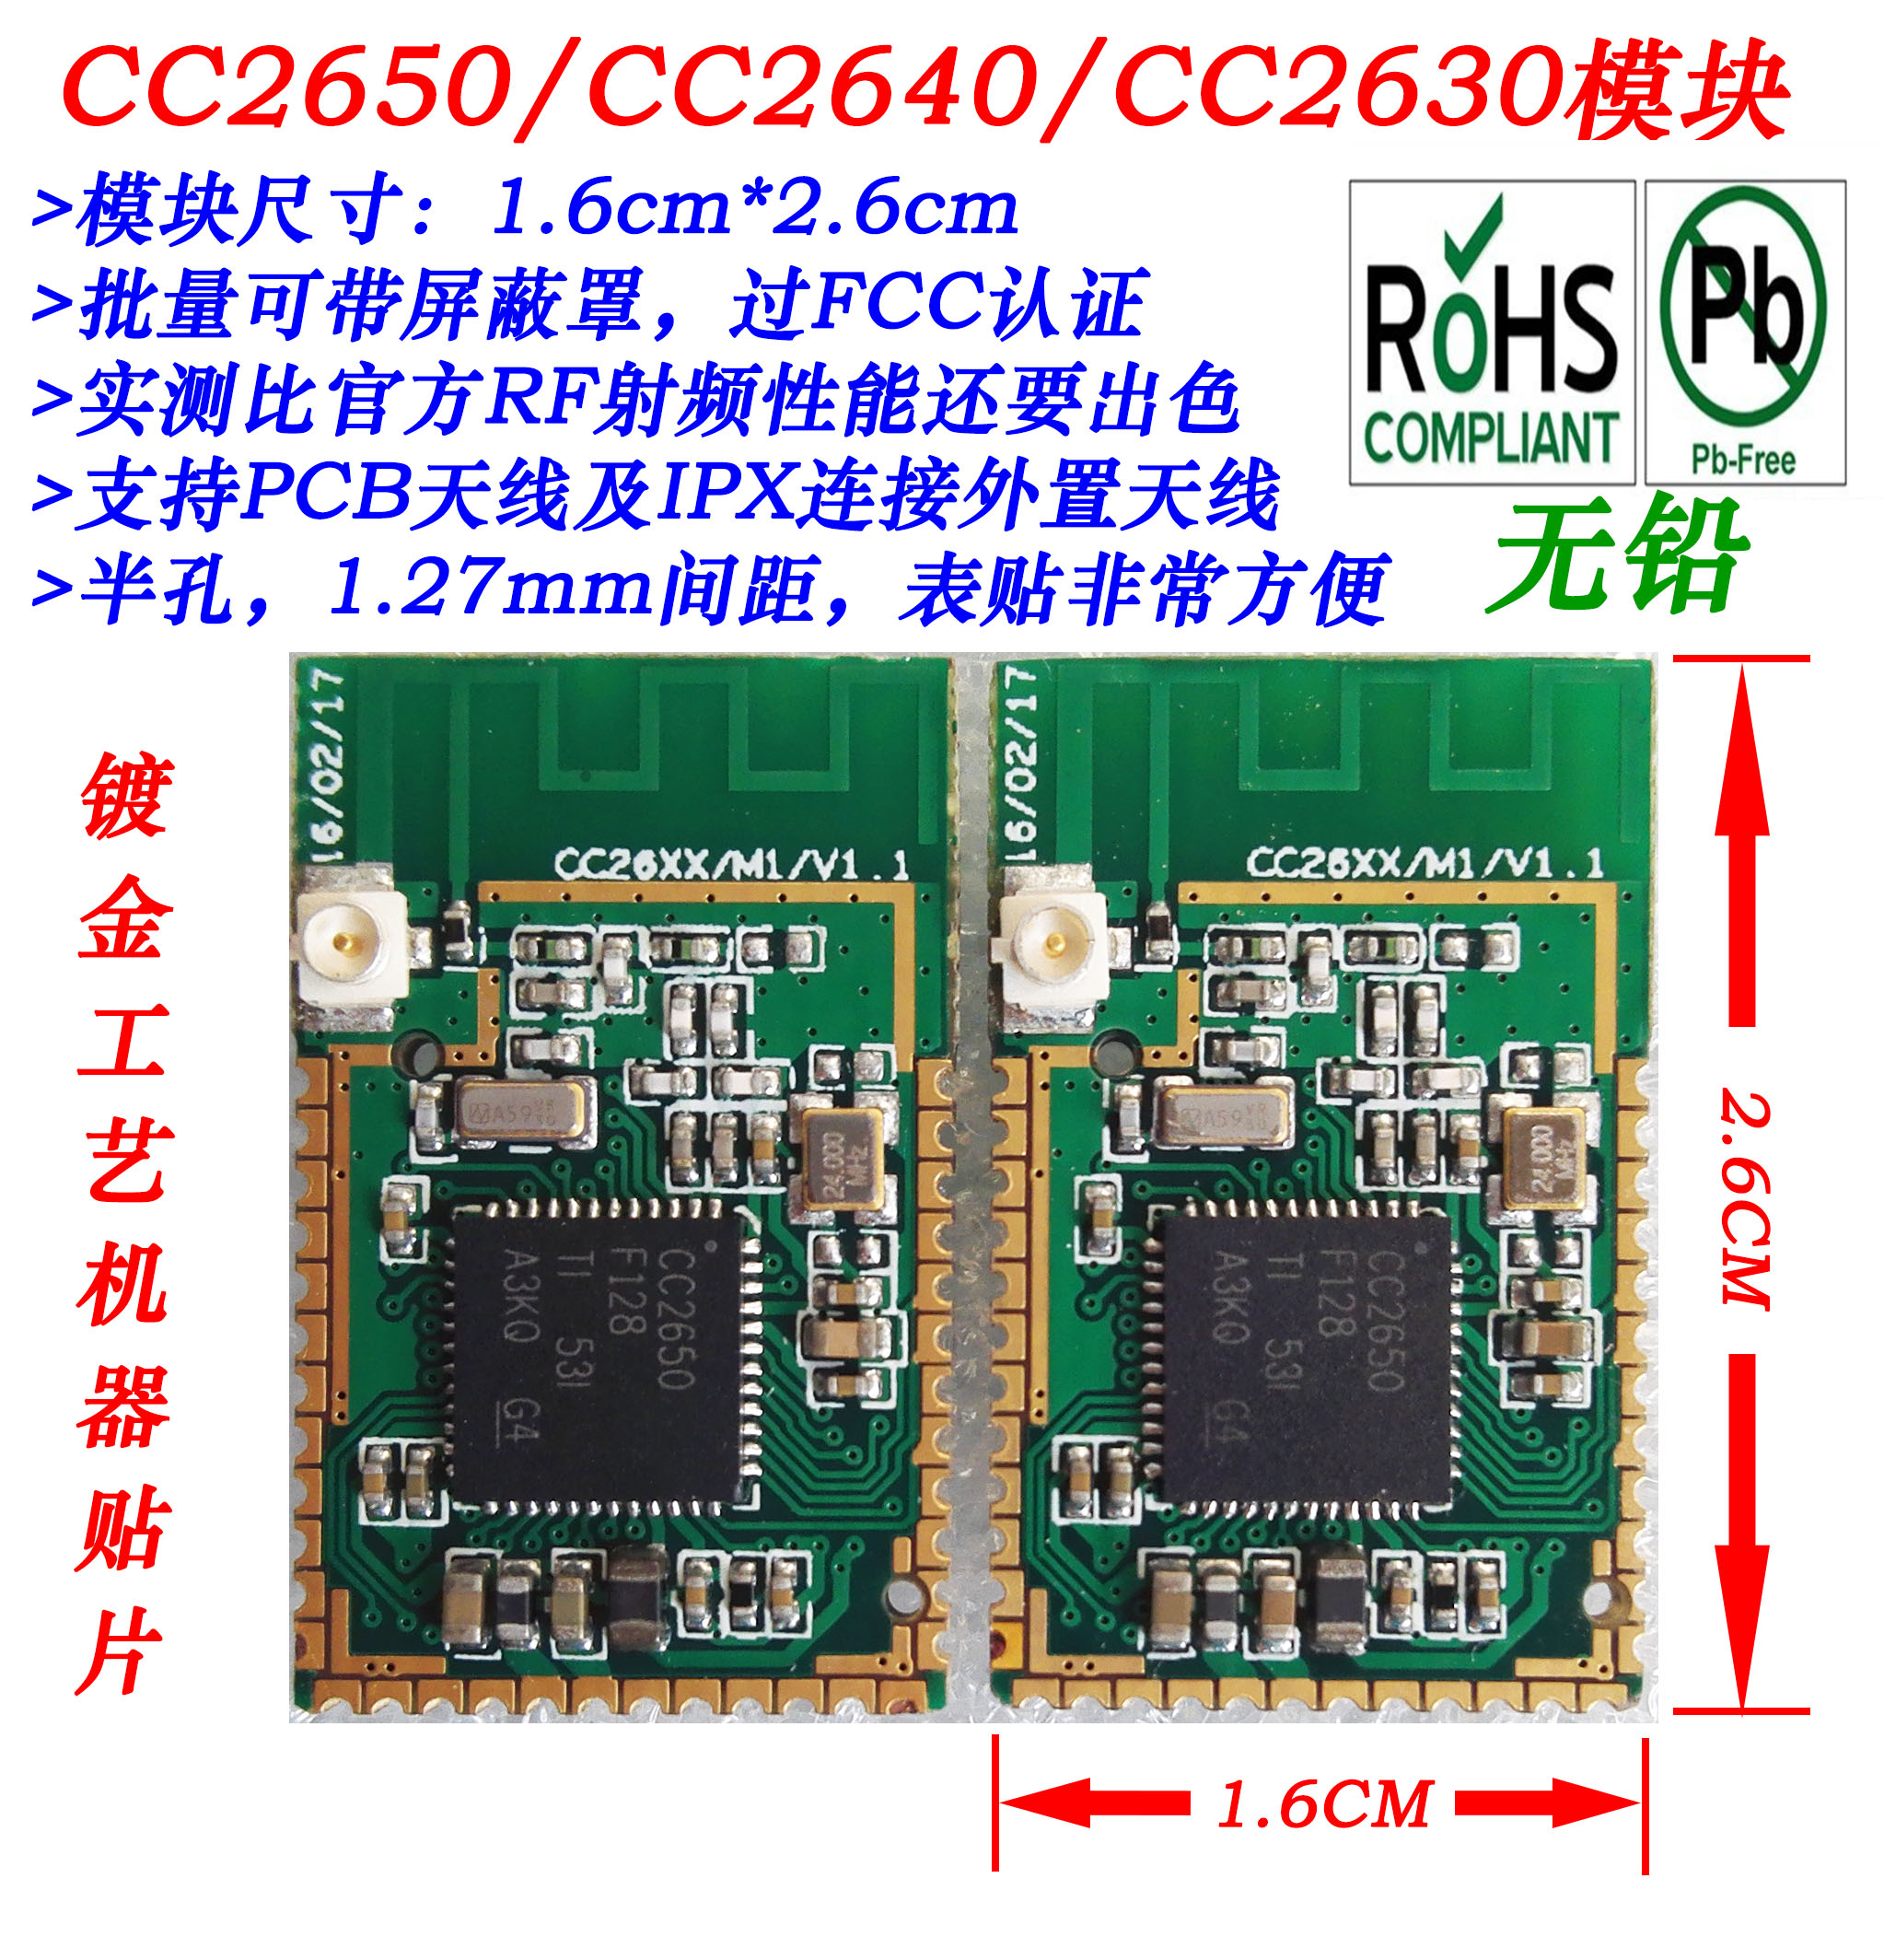 hight resolution of cc2640 cc2630 cc2650 bluetooth module zigbee module cc2640 module in air conditioner parts from home appliances on aliexpress com alibaba group